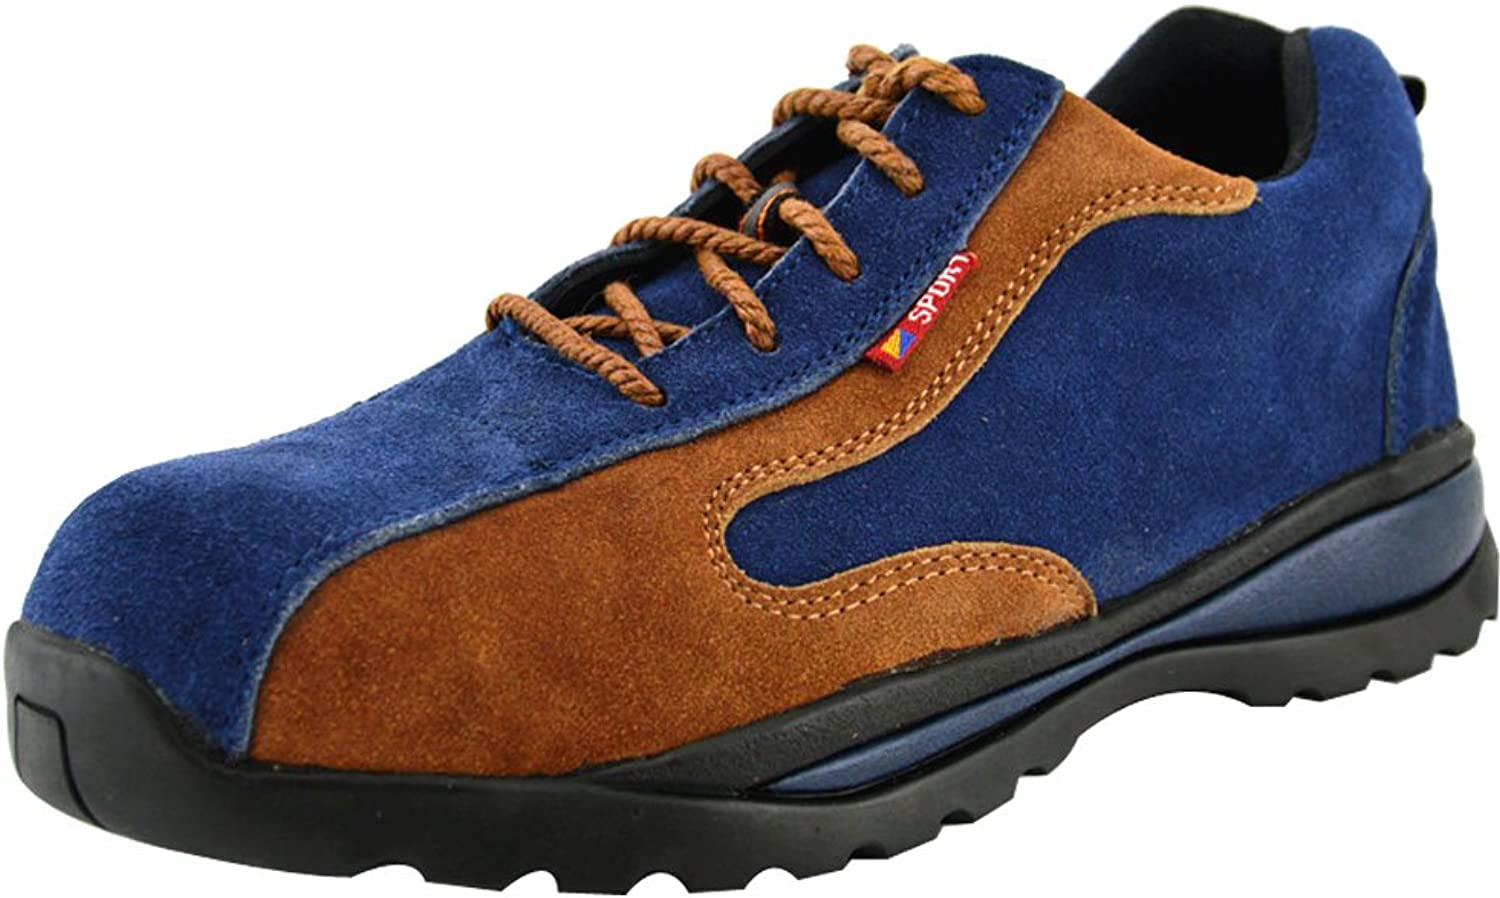 Ecextreme Ecextreme Ecextreme for Work herrar Lace -up Blais Steel -Toe Hiking skor  till grossist